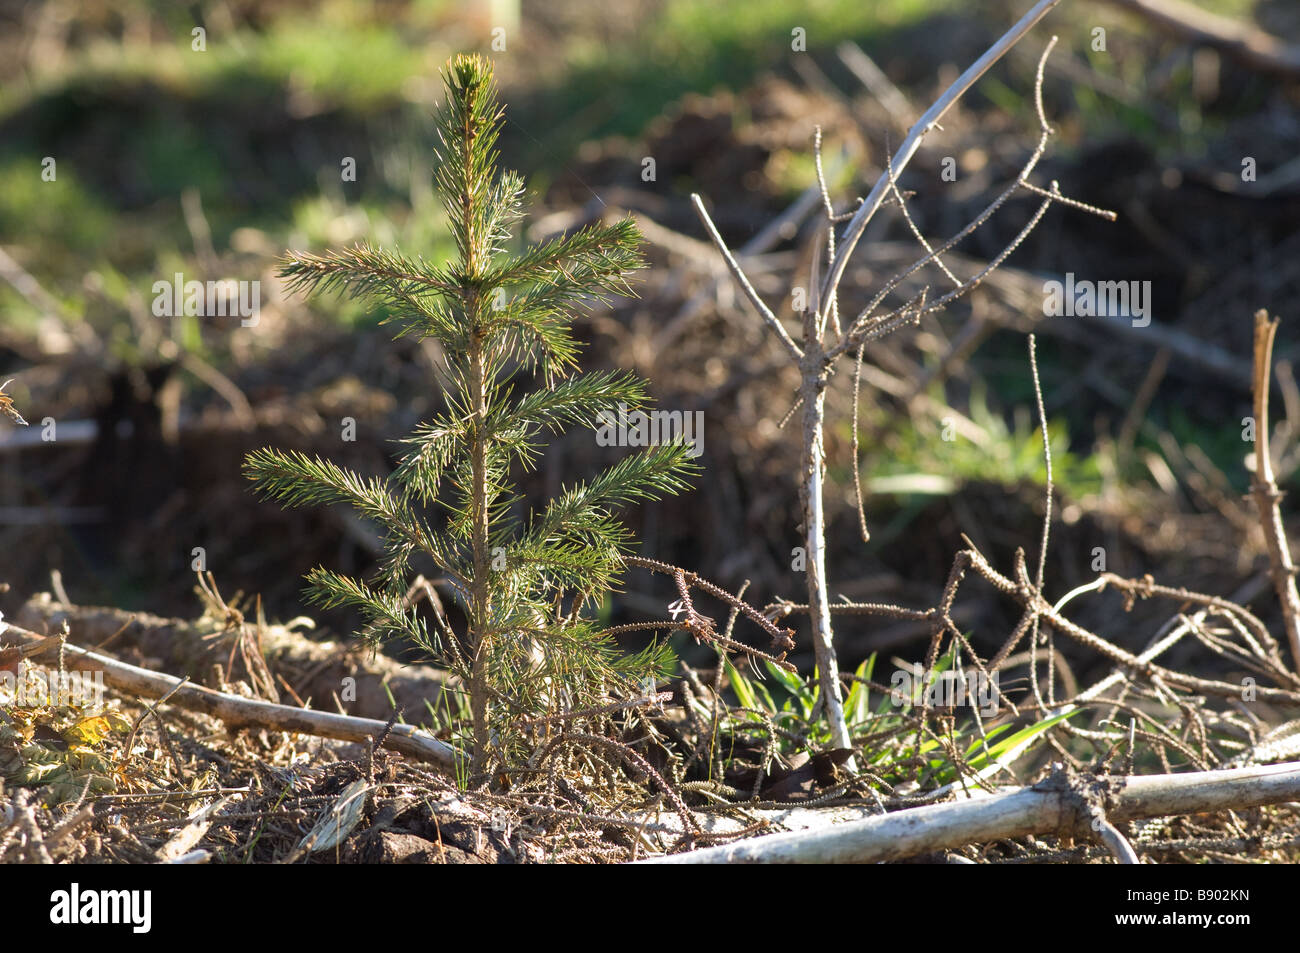 Close up of young Norway spruce (Picea abies) in forestry plantation, North Yorkshire, UK - Stock Image